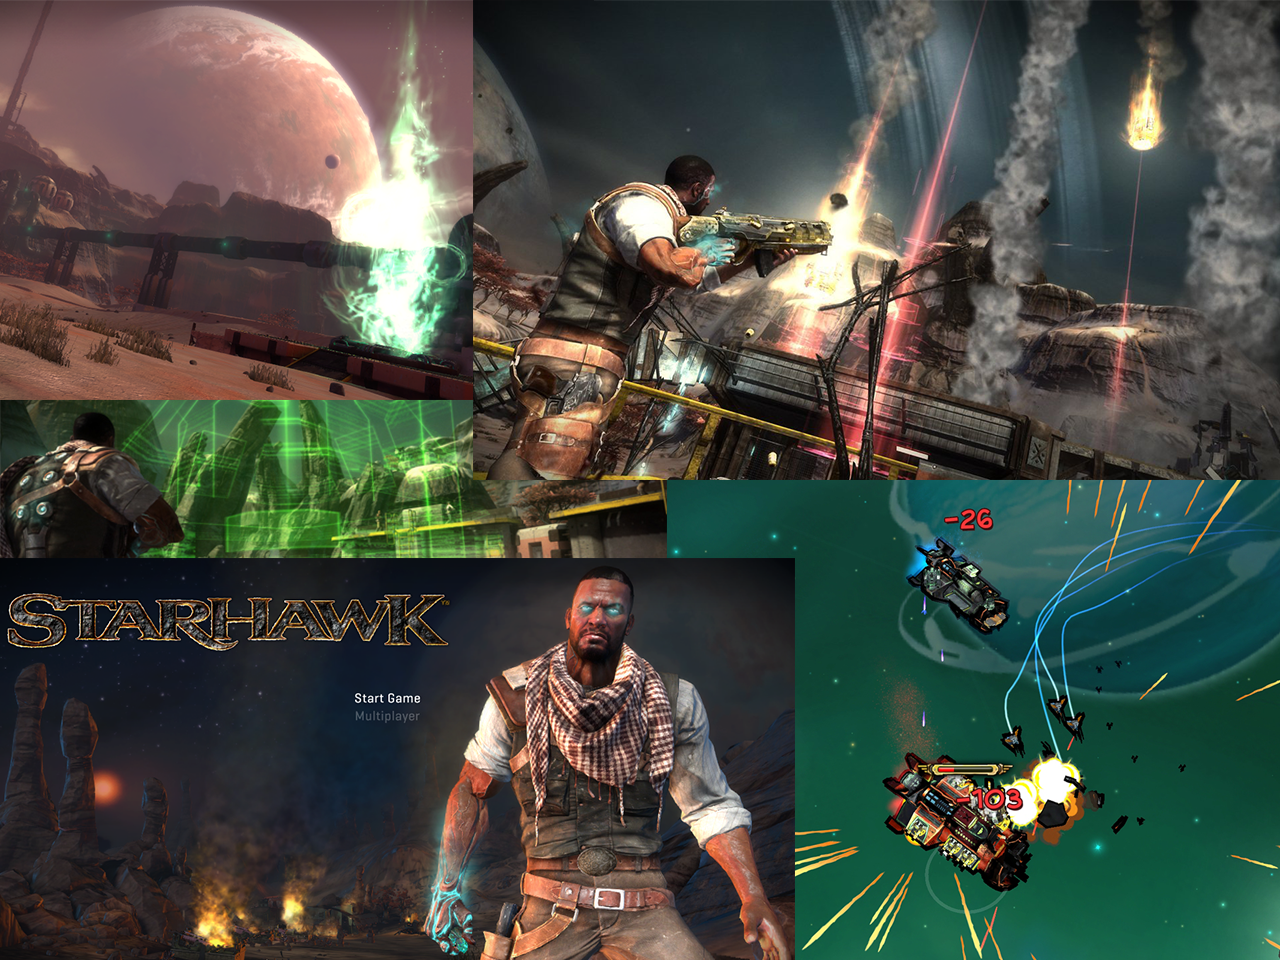 Projects - — Starhawk (PS3).— Untitled Space Multiplayer Shooter Prototype (PS4/Orbis).— PlunderNauts (Mobile).